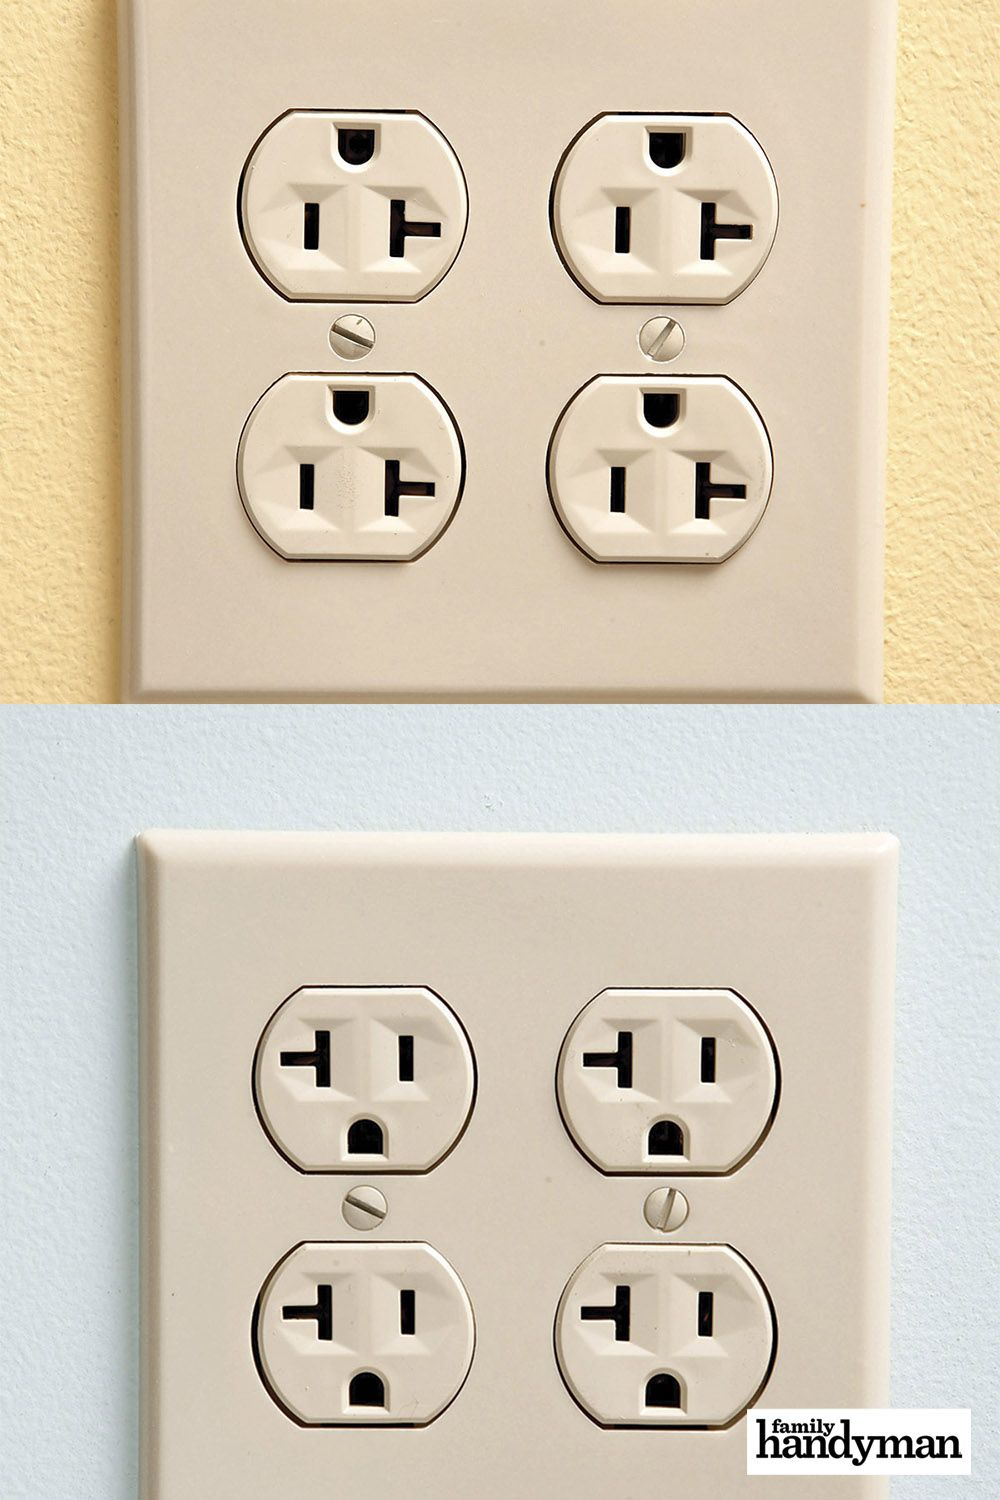 The Proper Way To Install An Electrical Outlet Electrical Outlets Diy Home Repair Diy Home Improvement